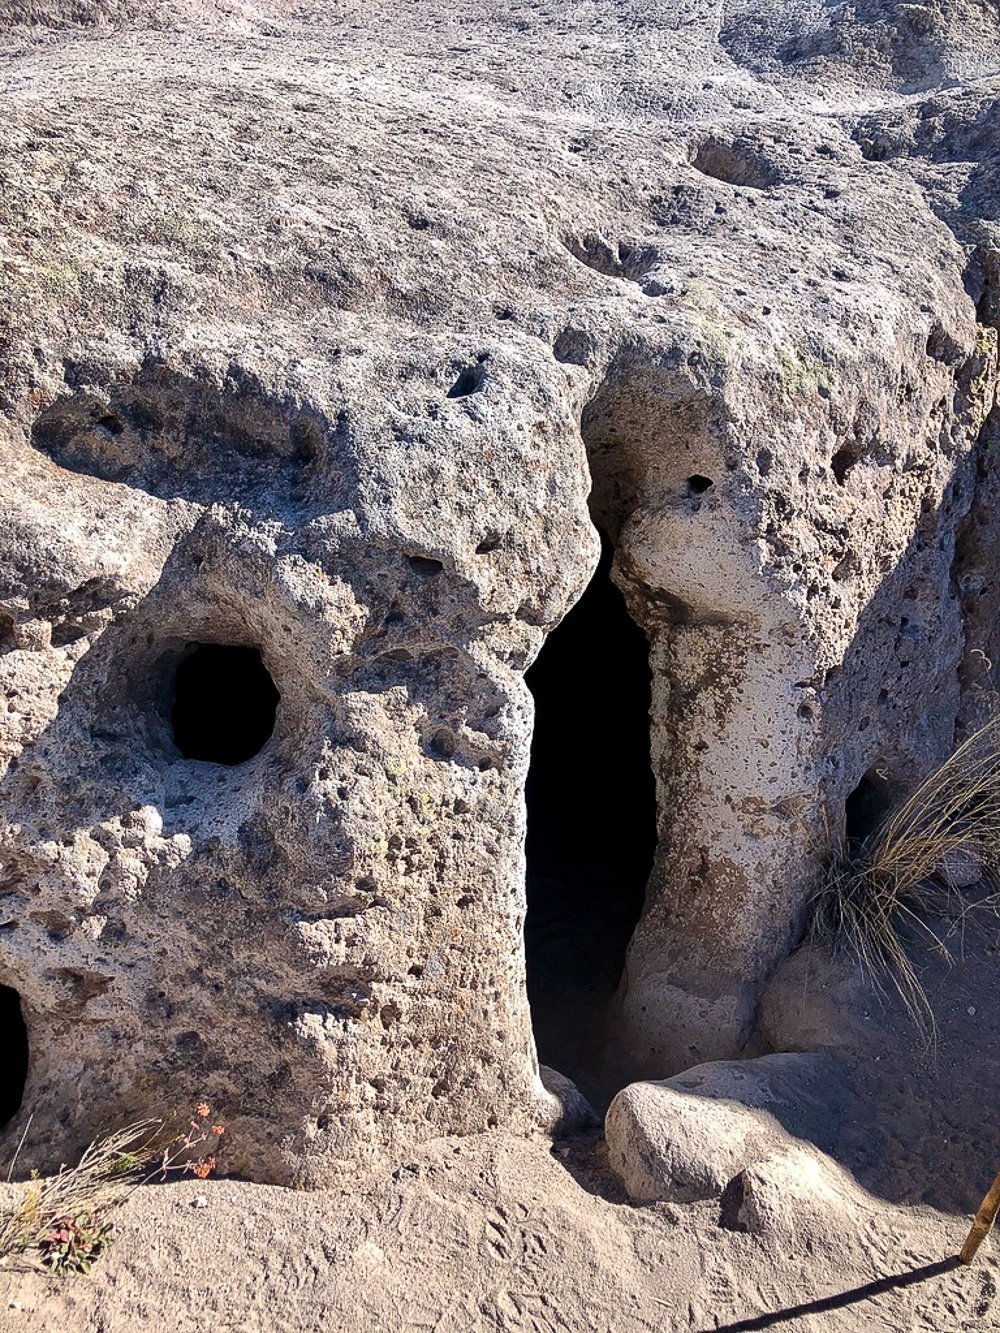 Ancient Native American dwelling at Bandelier Monument, Santa Fe